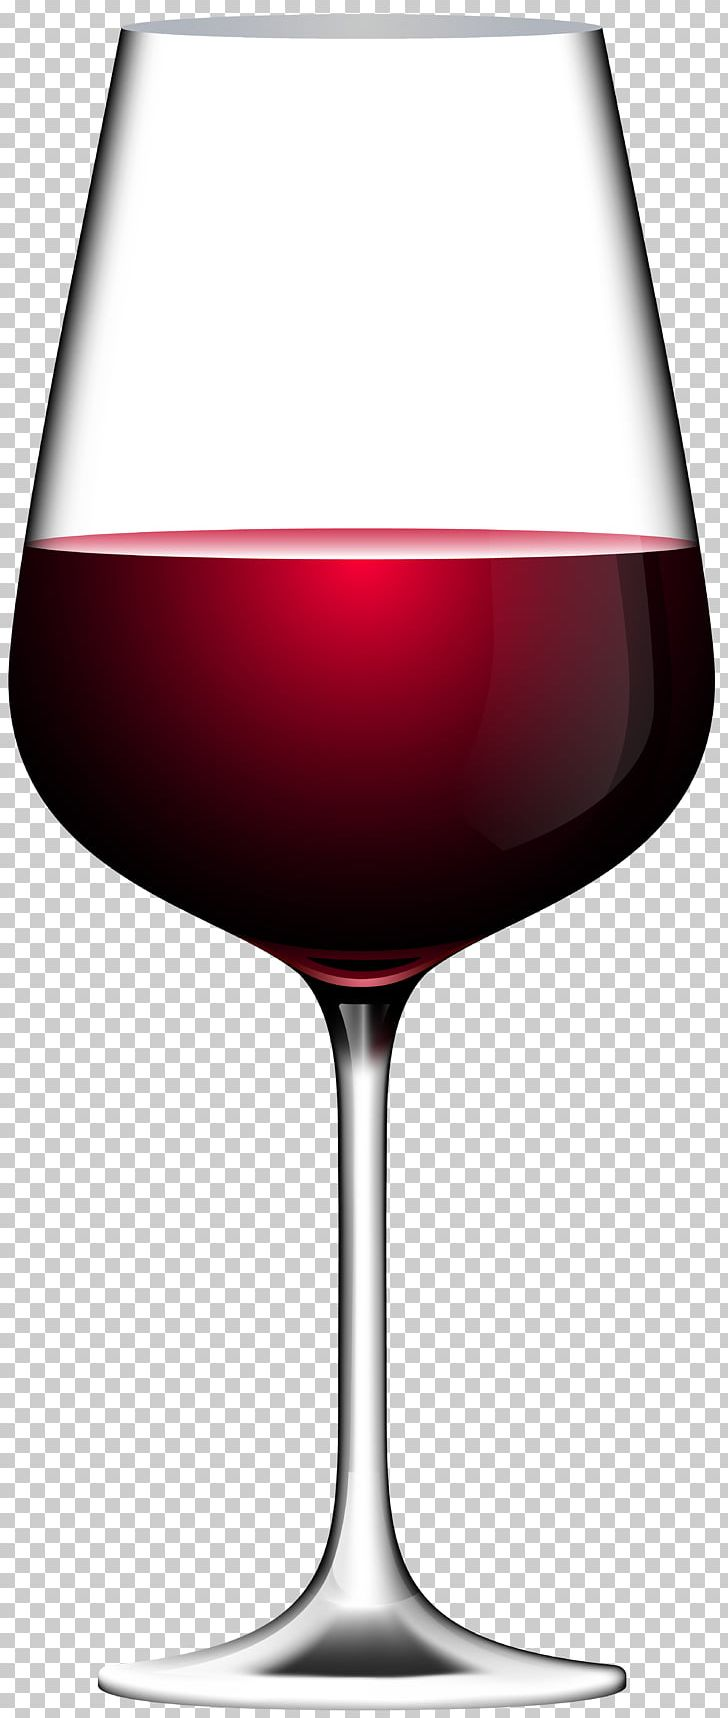 Red Wine Champagne Wine Glass PNG, Clipart, Alcoholic Drink.